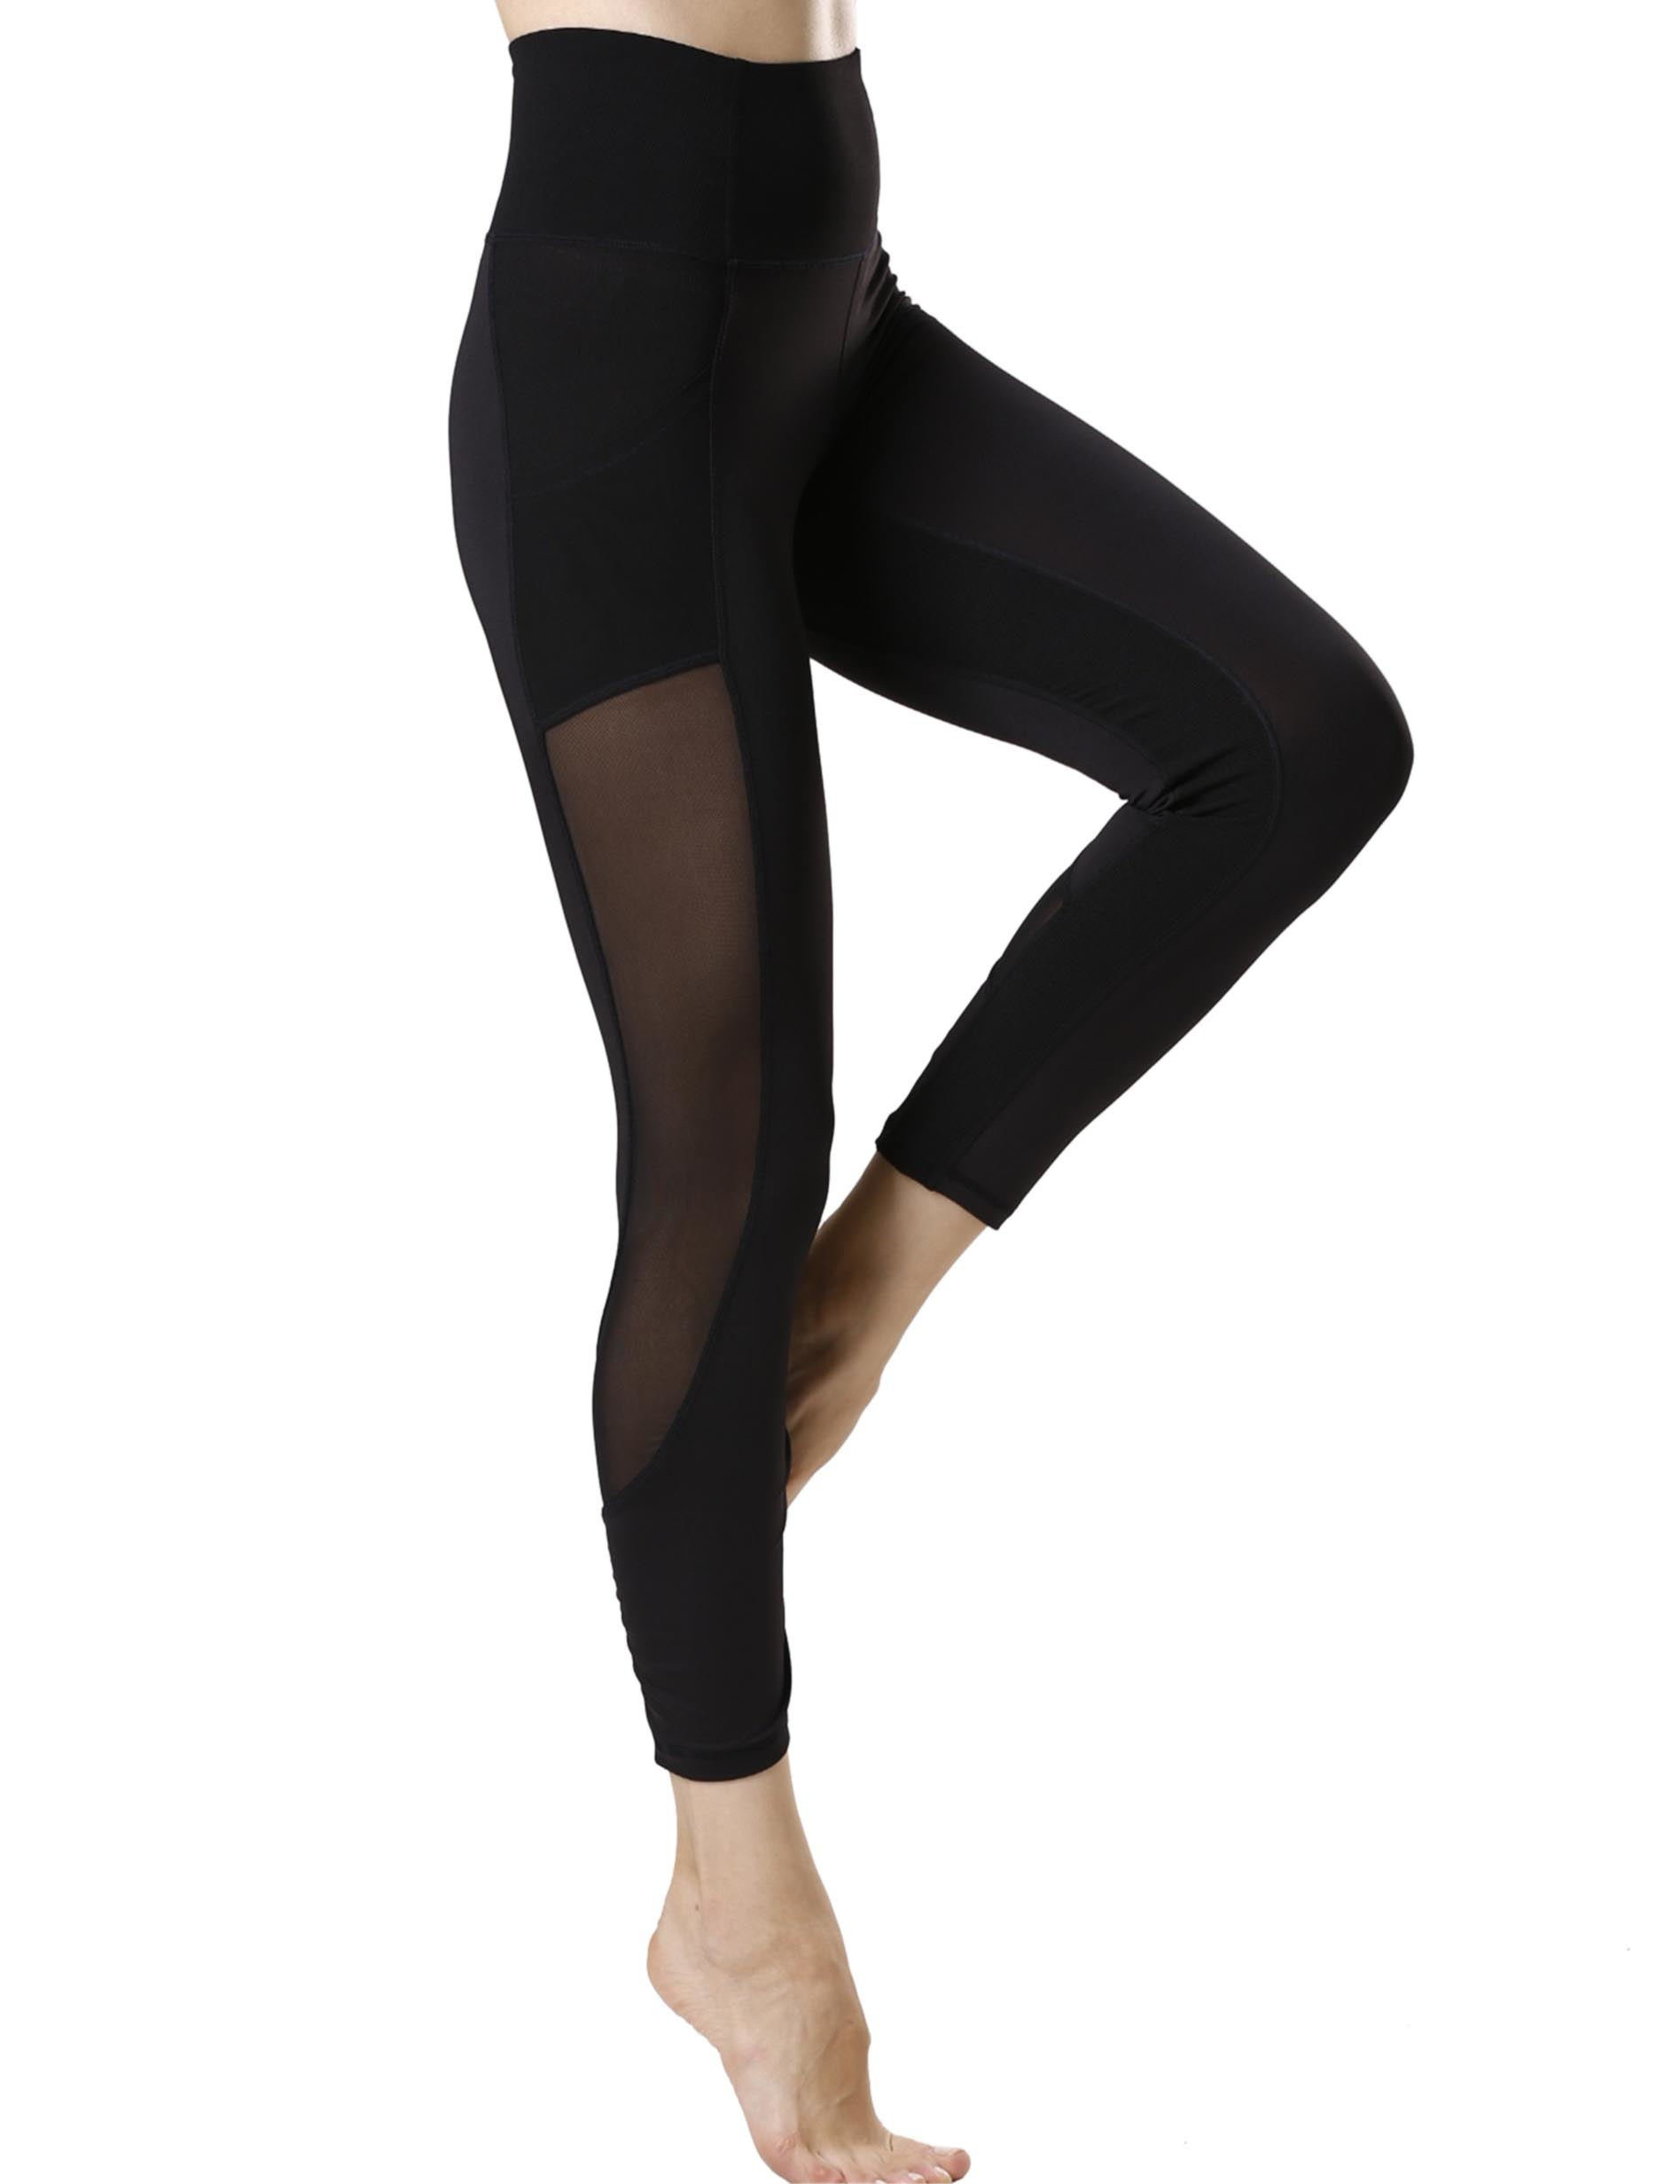 icyZone Tummy Control Slimming Shaping High Waist Yoga Tights Leggings with Mesh (M, Black)